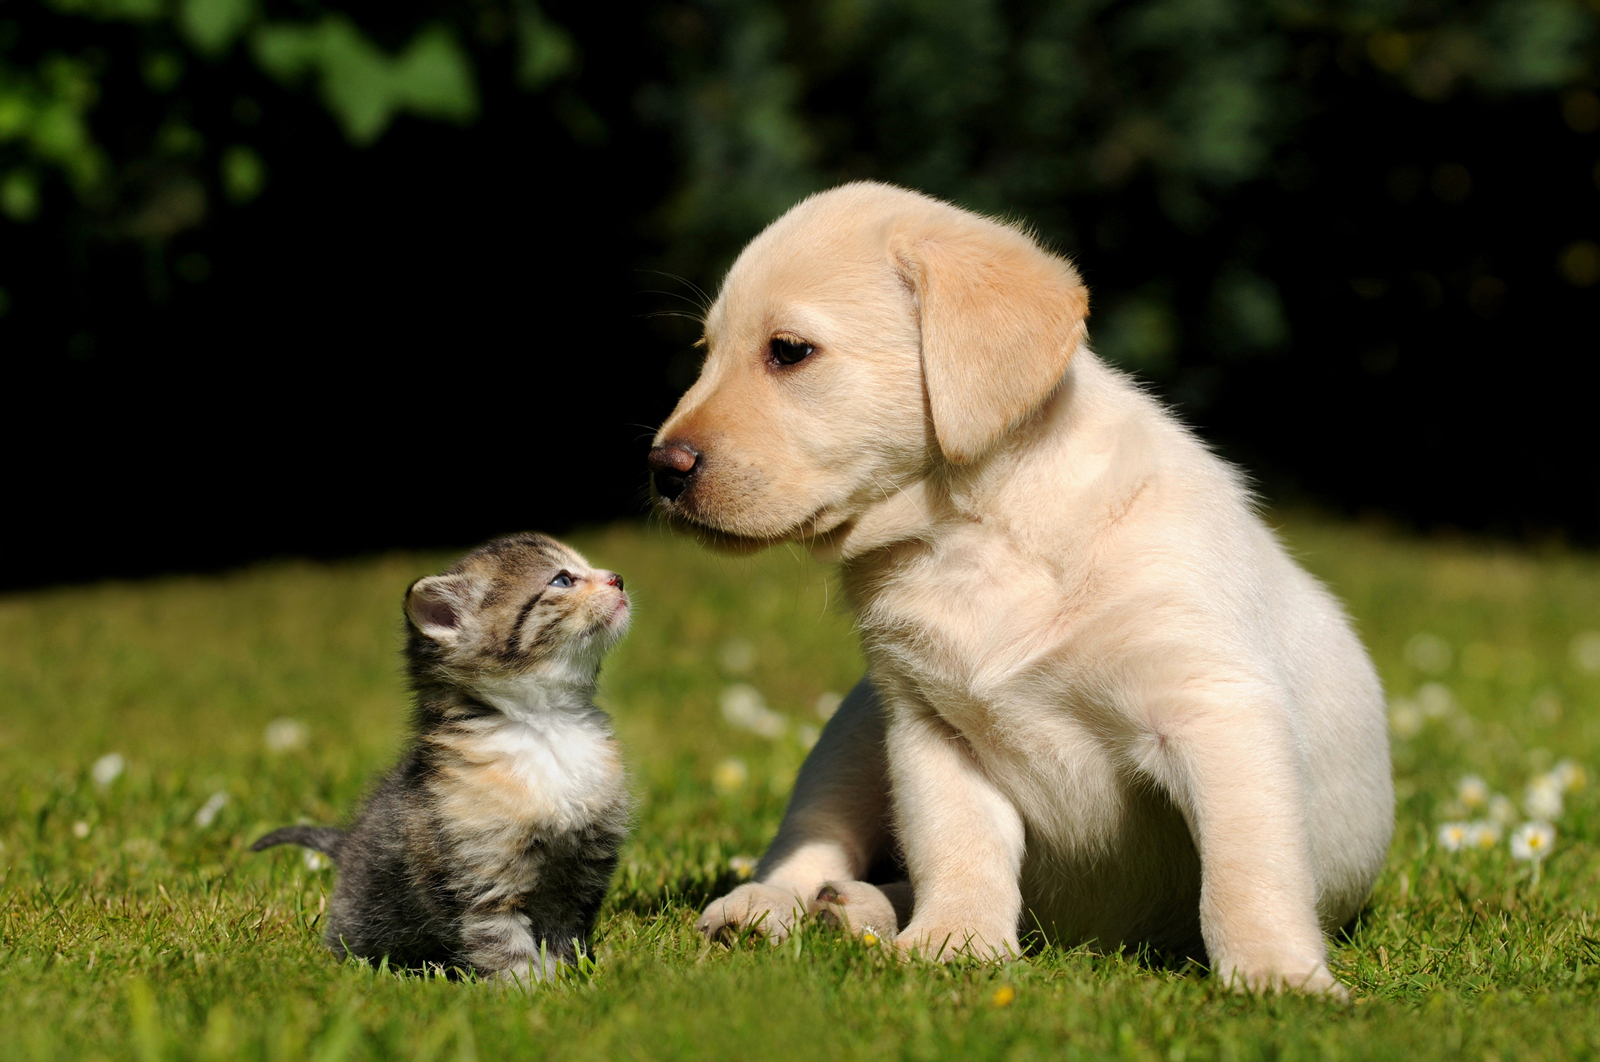 A puppy and a kitten sitting outside in a well kept garden on a sunny day